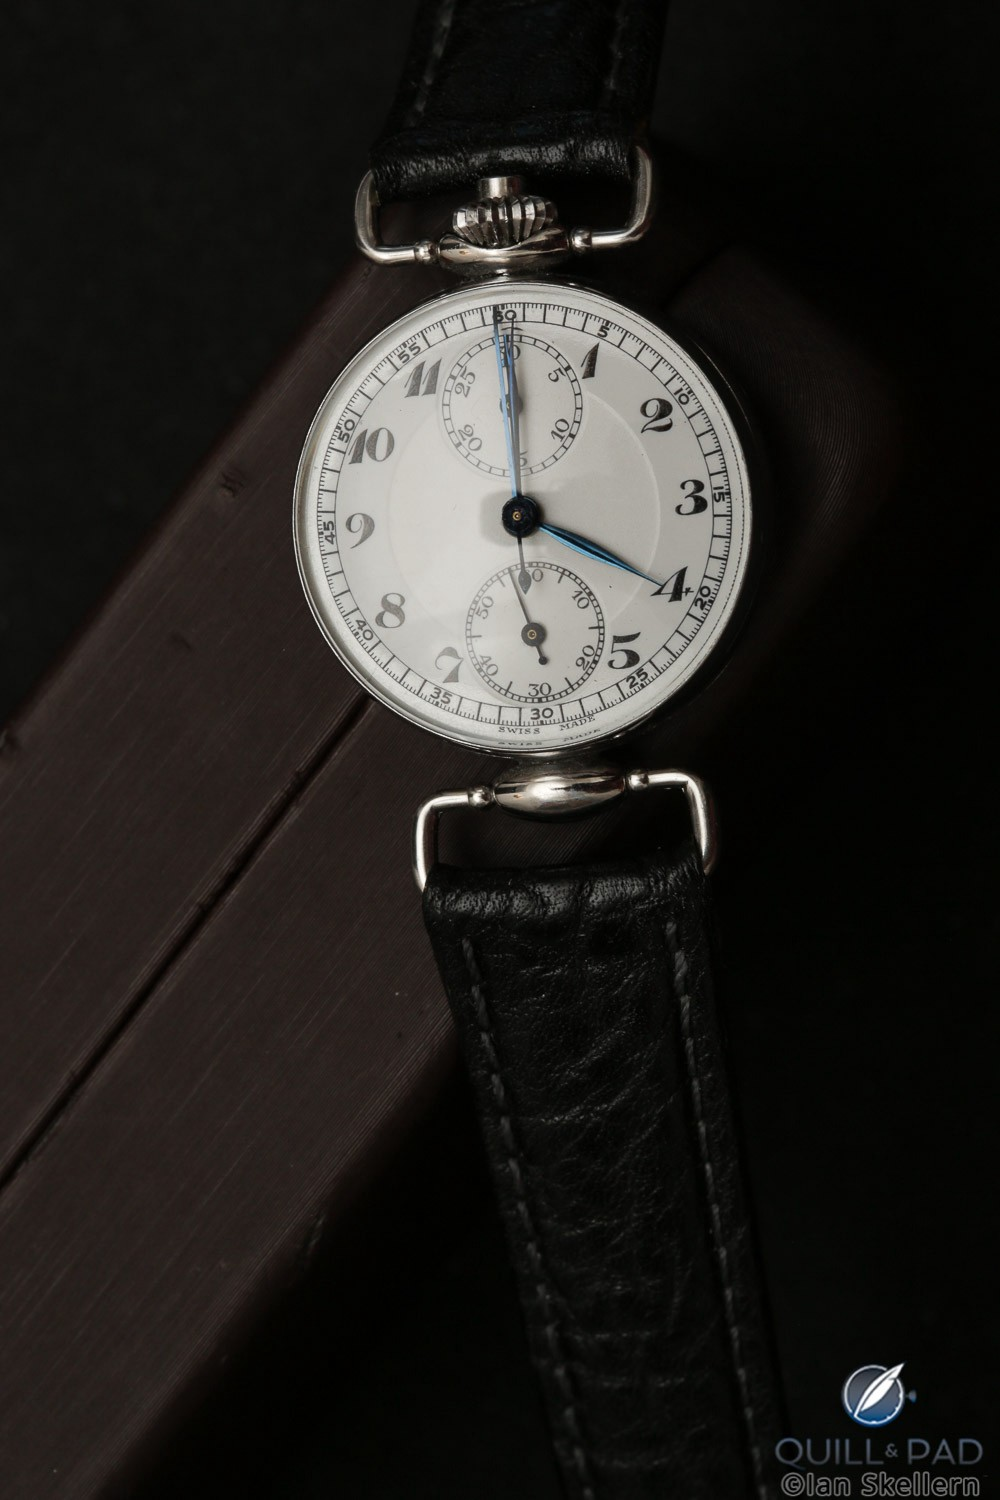 A Pontifa chronograph from about 1935 with vertical clutch from Gerd-Rüdiger Lang's extensive chronograph collection